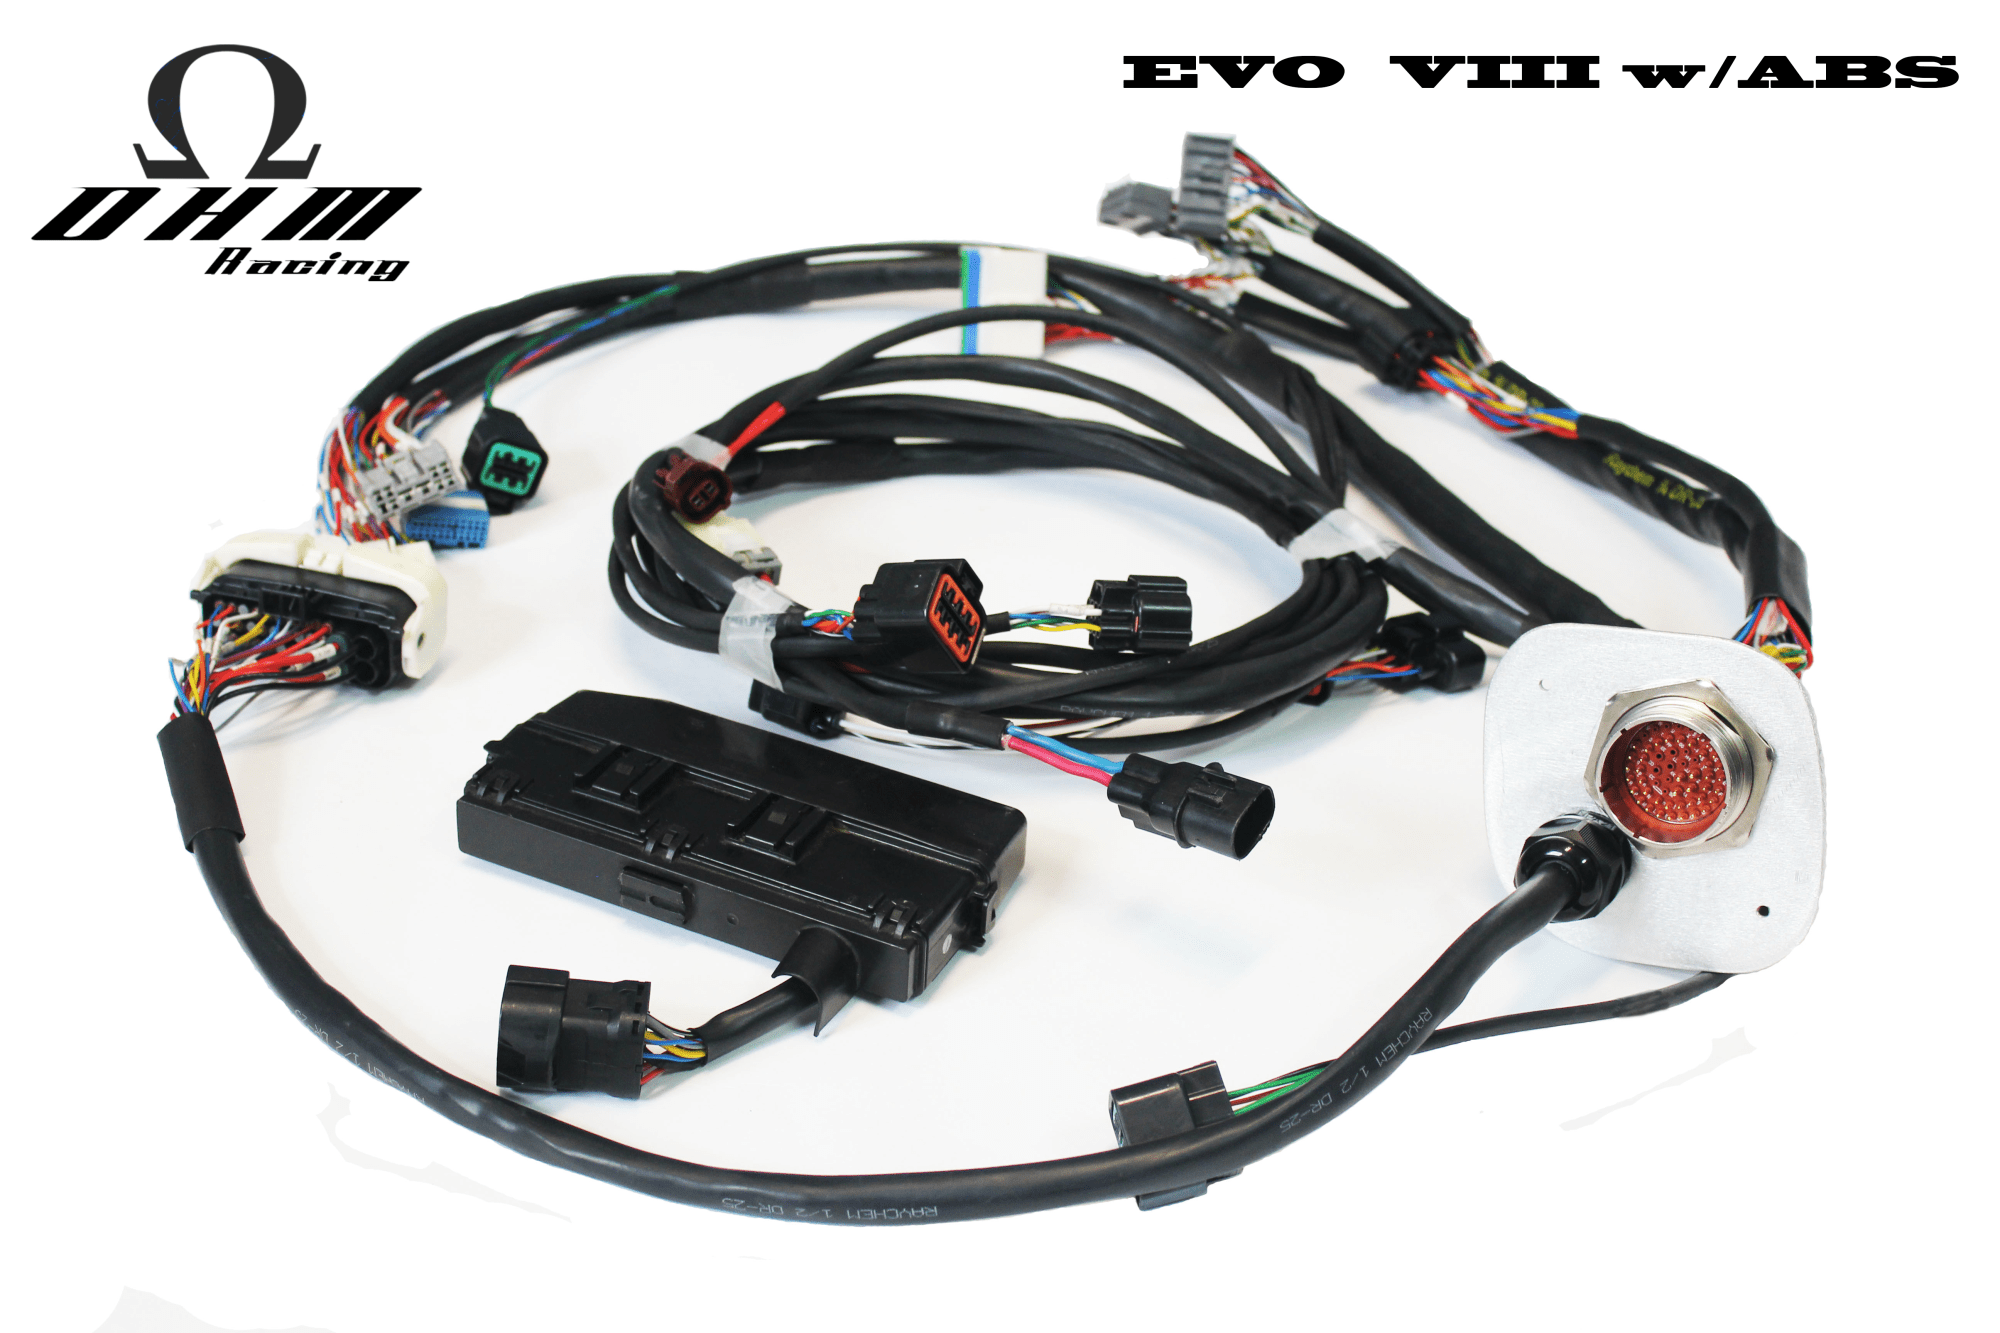 hight resolution of stage 3 mil spec engine harness evo 8 www ohm racing com gm wiring harness wiring harness evo 9